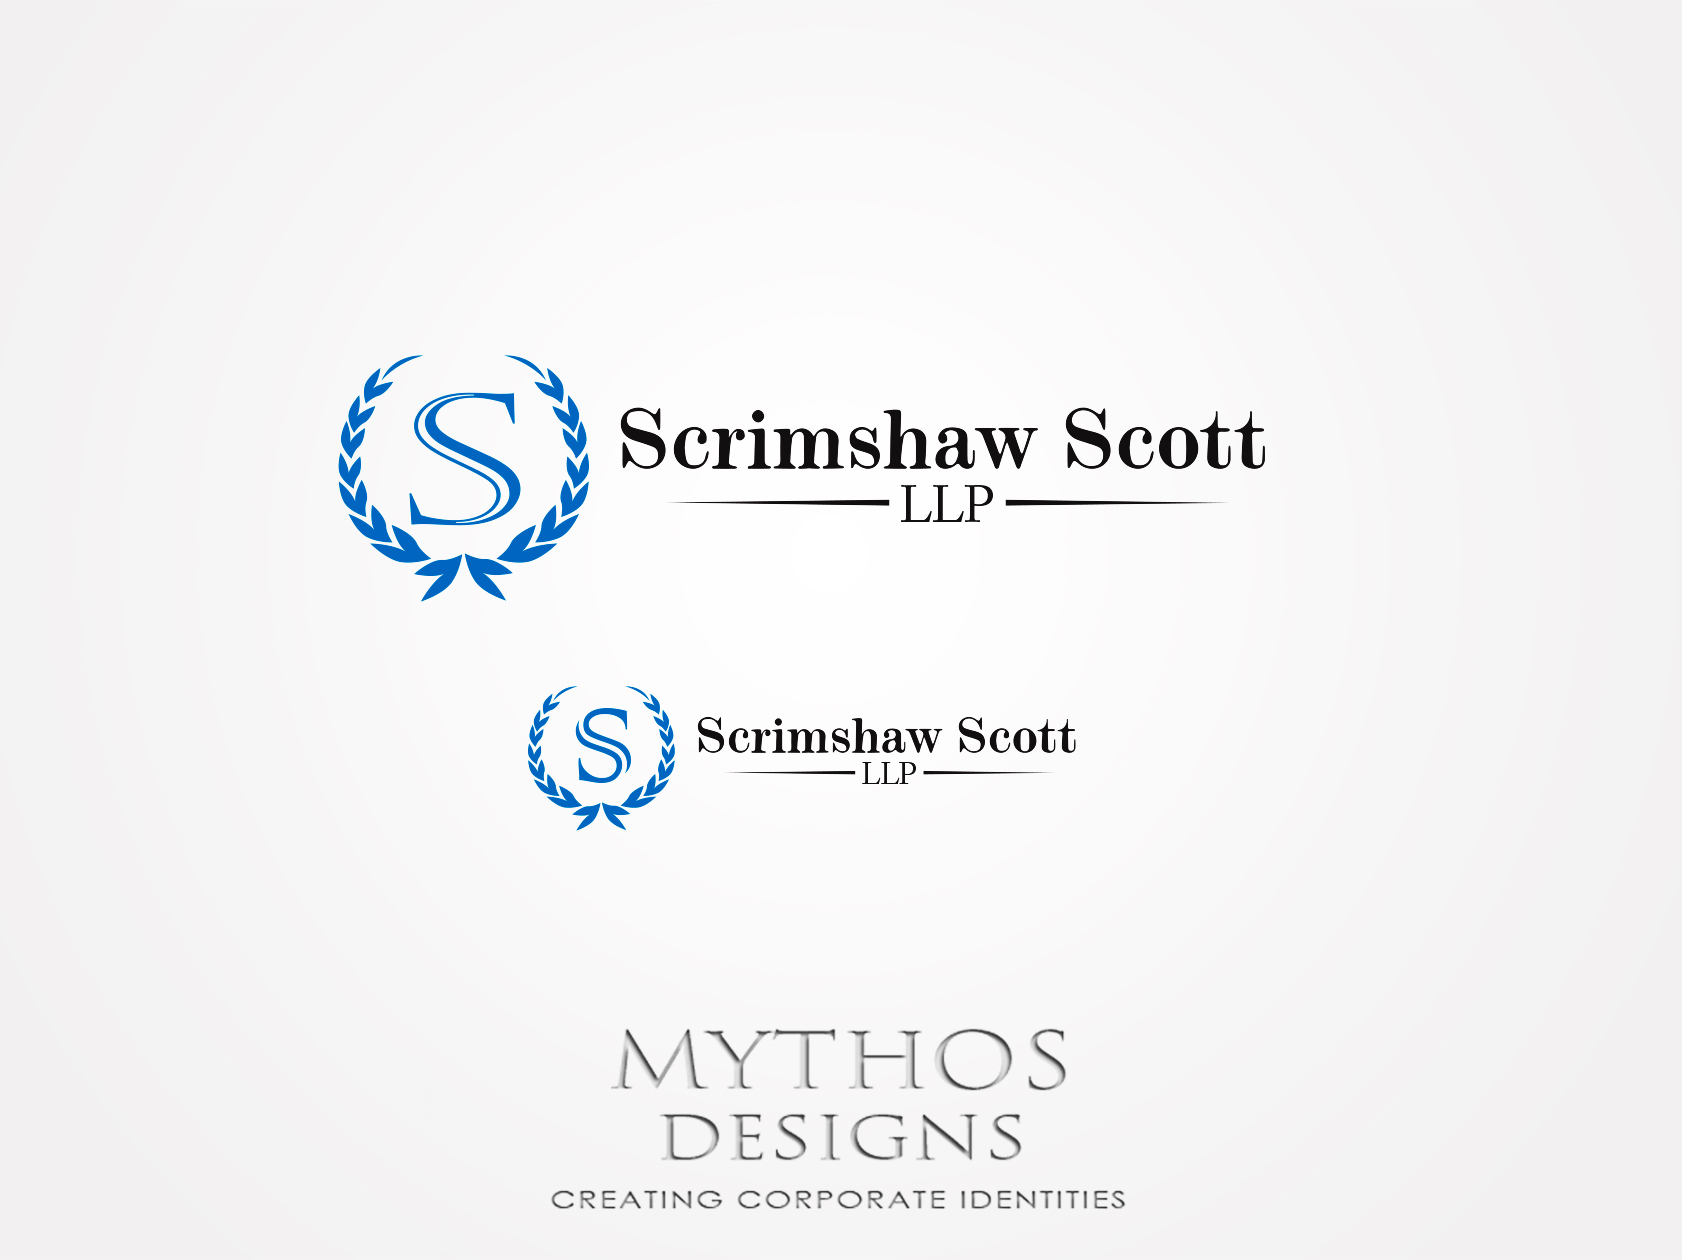 Logo Design by Mythos Designs - Entry No. 55 in the Logo Design Contest Creative Logo Design for Scrimshaw Scott LLP.